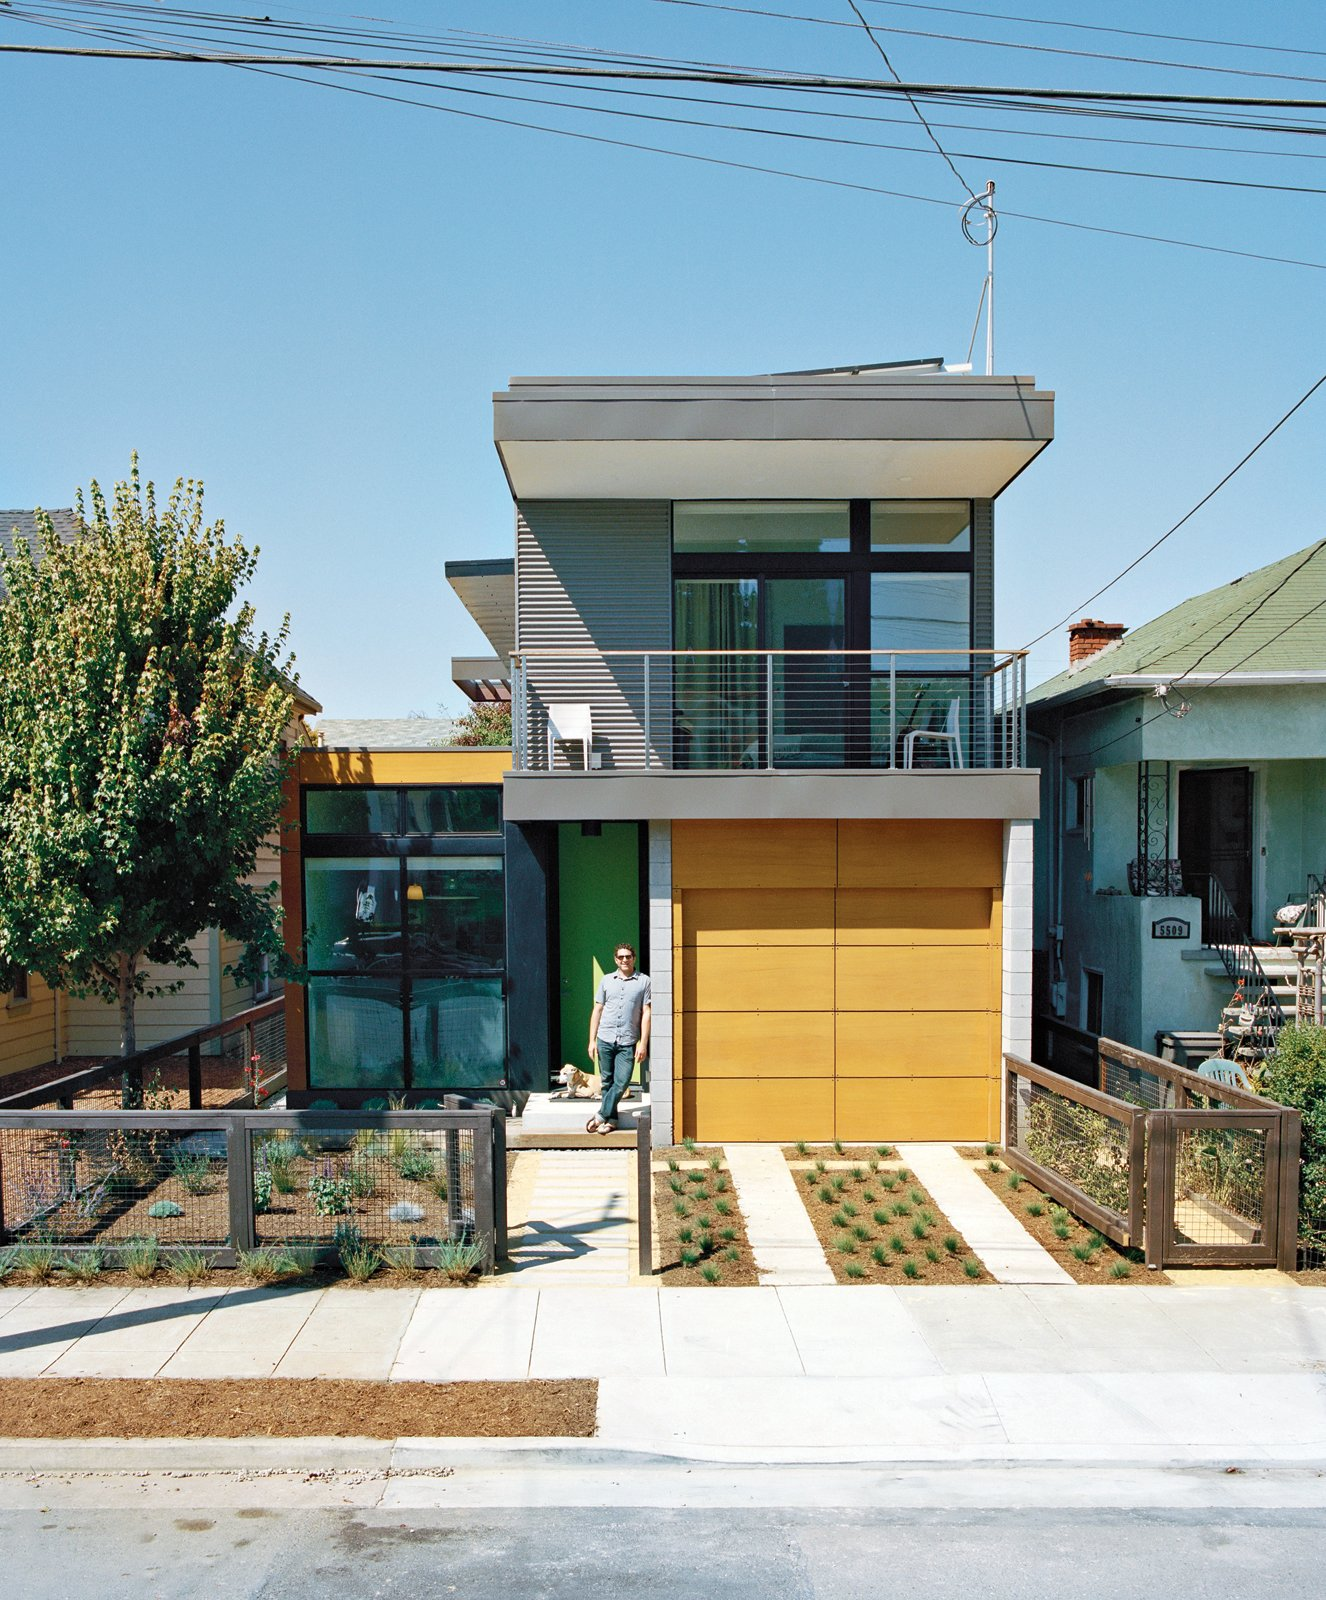 With a sleek prototype in Emeryville, California, under its belt, Simpatico Homes sets out to redefine prefab's cost—and footprint. Photo by Jake Stangel.  (Nearly) Net-Zero Homes by Erika Heet from Modern East Bay Getaways